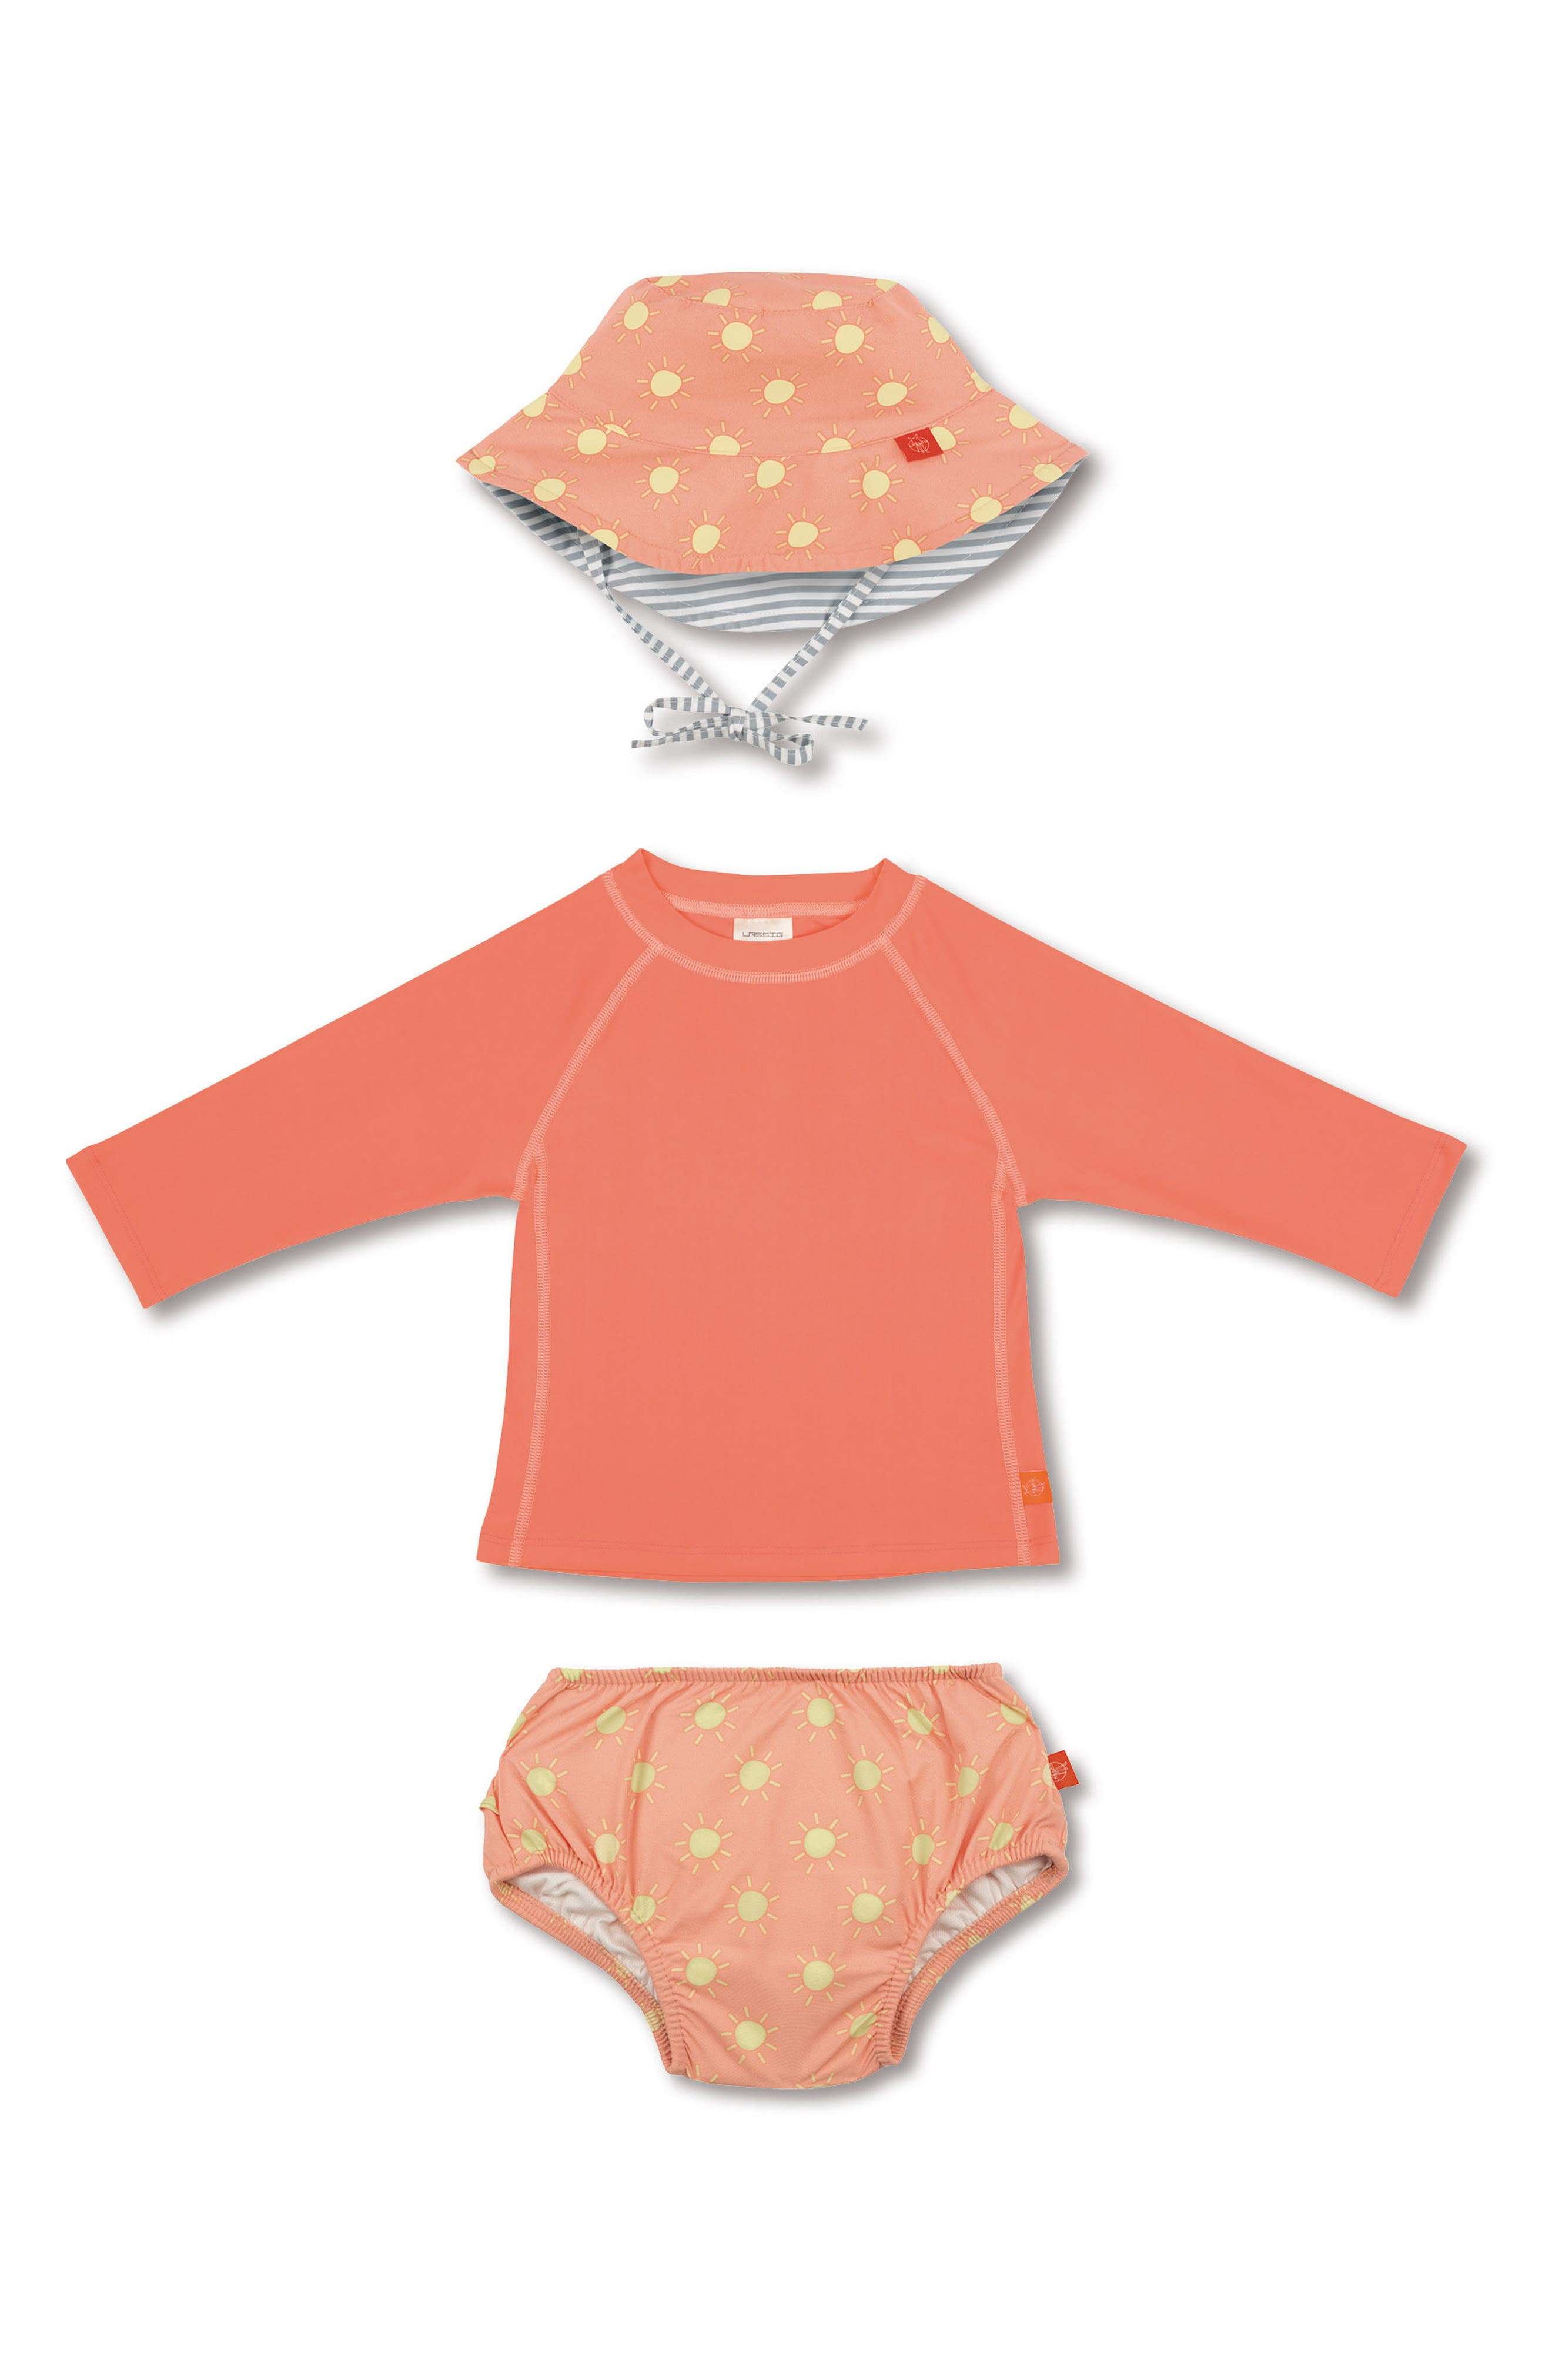 Lassig Two-Piece Rashguard Swimsuit & Hat Set (Baby & Toddler)